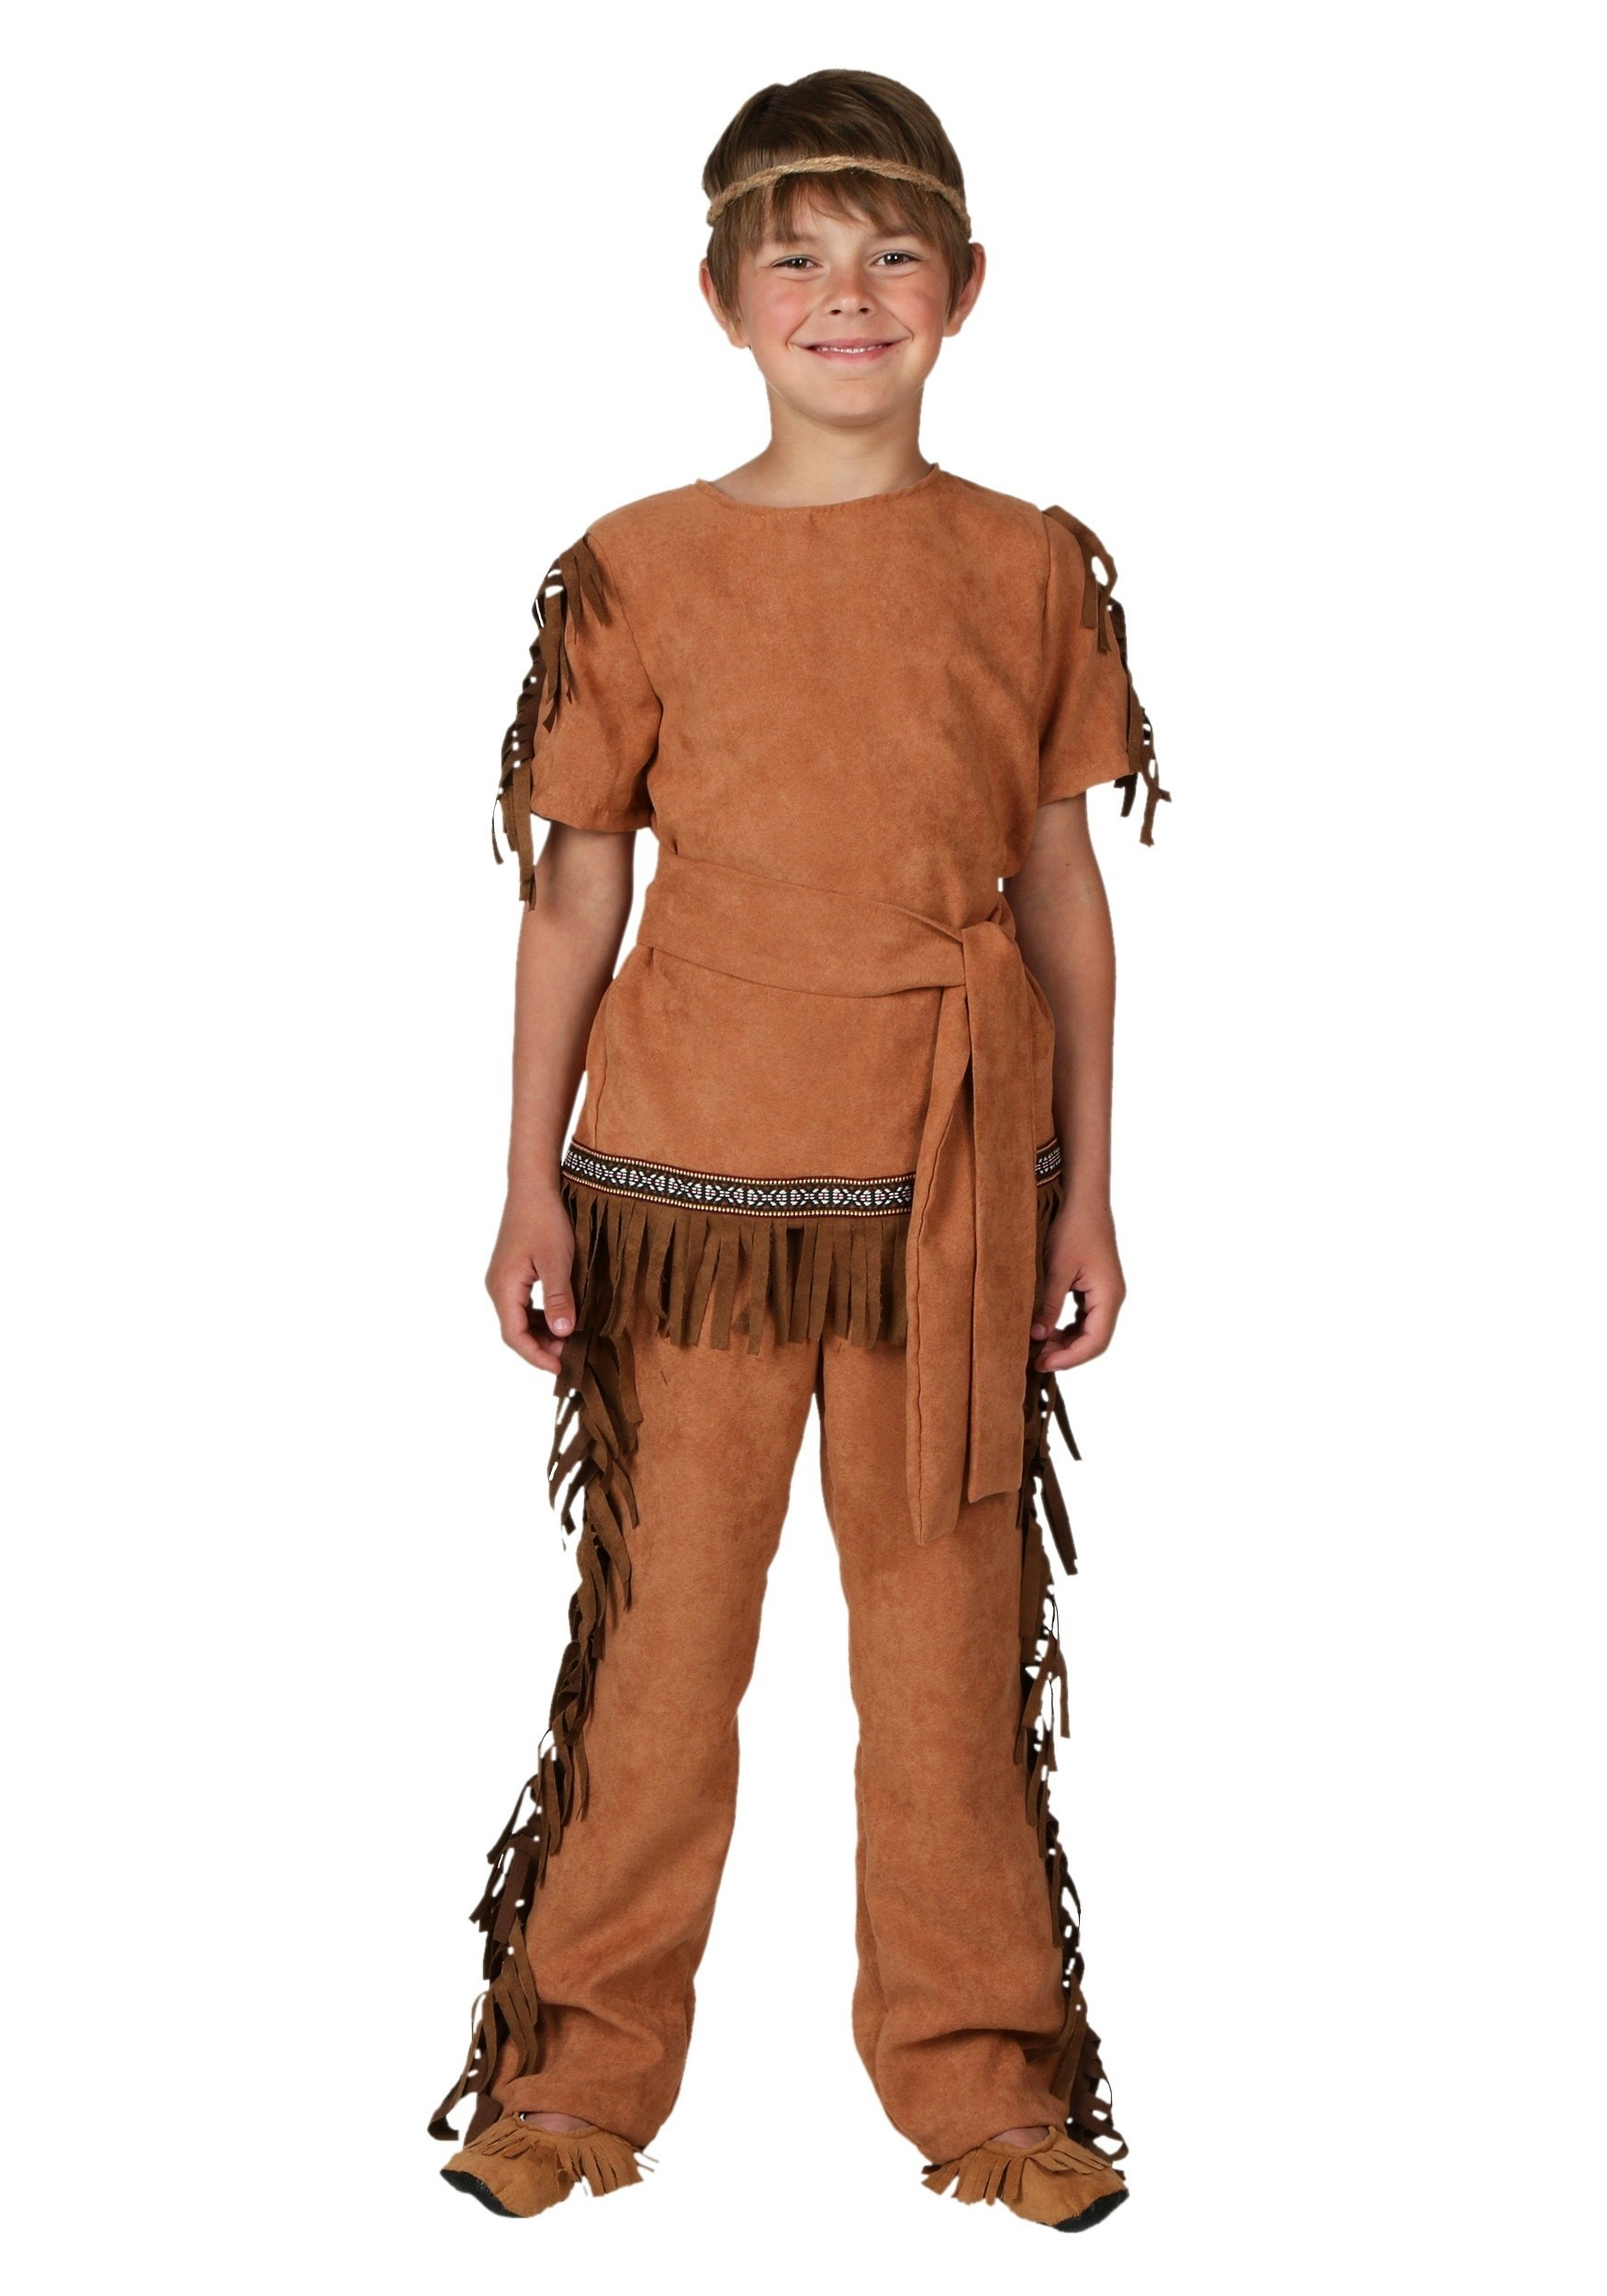 Pics Photos - Indian Child Costume Jpg Toddler Indian Girl Costume